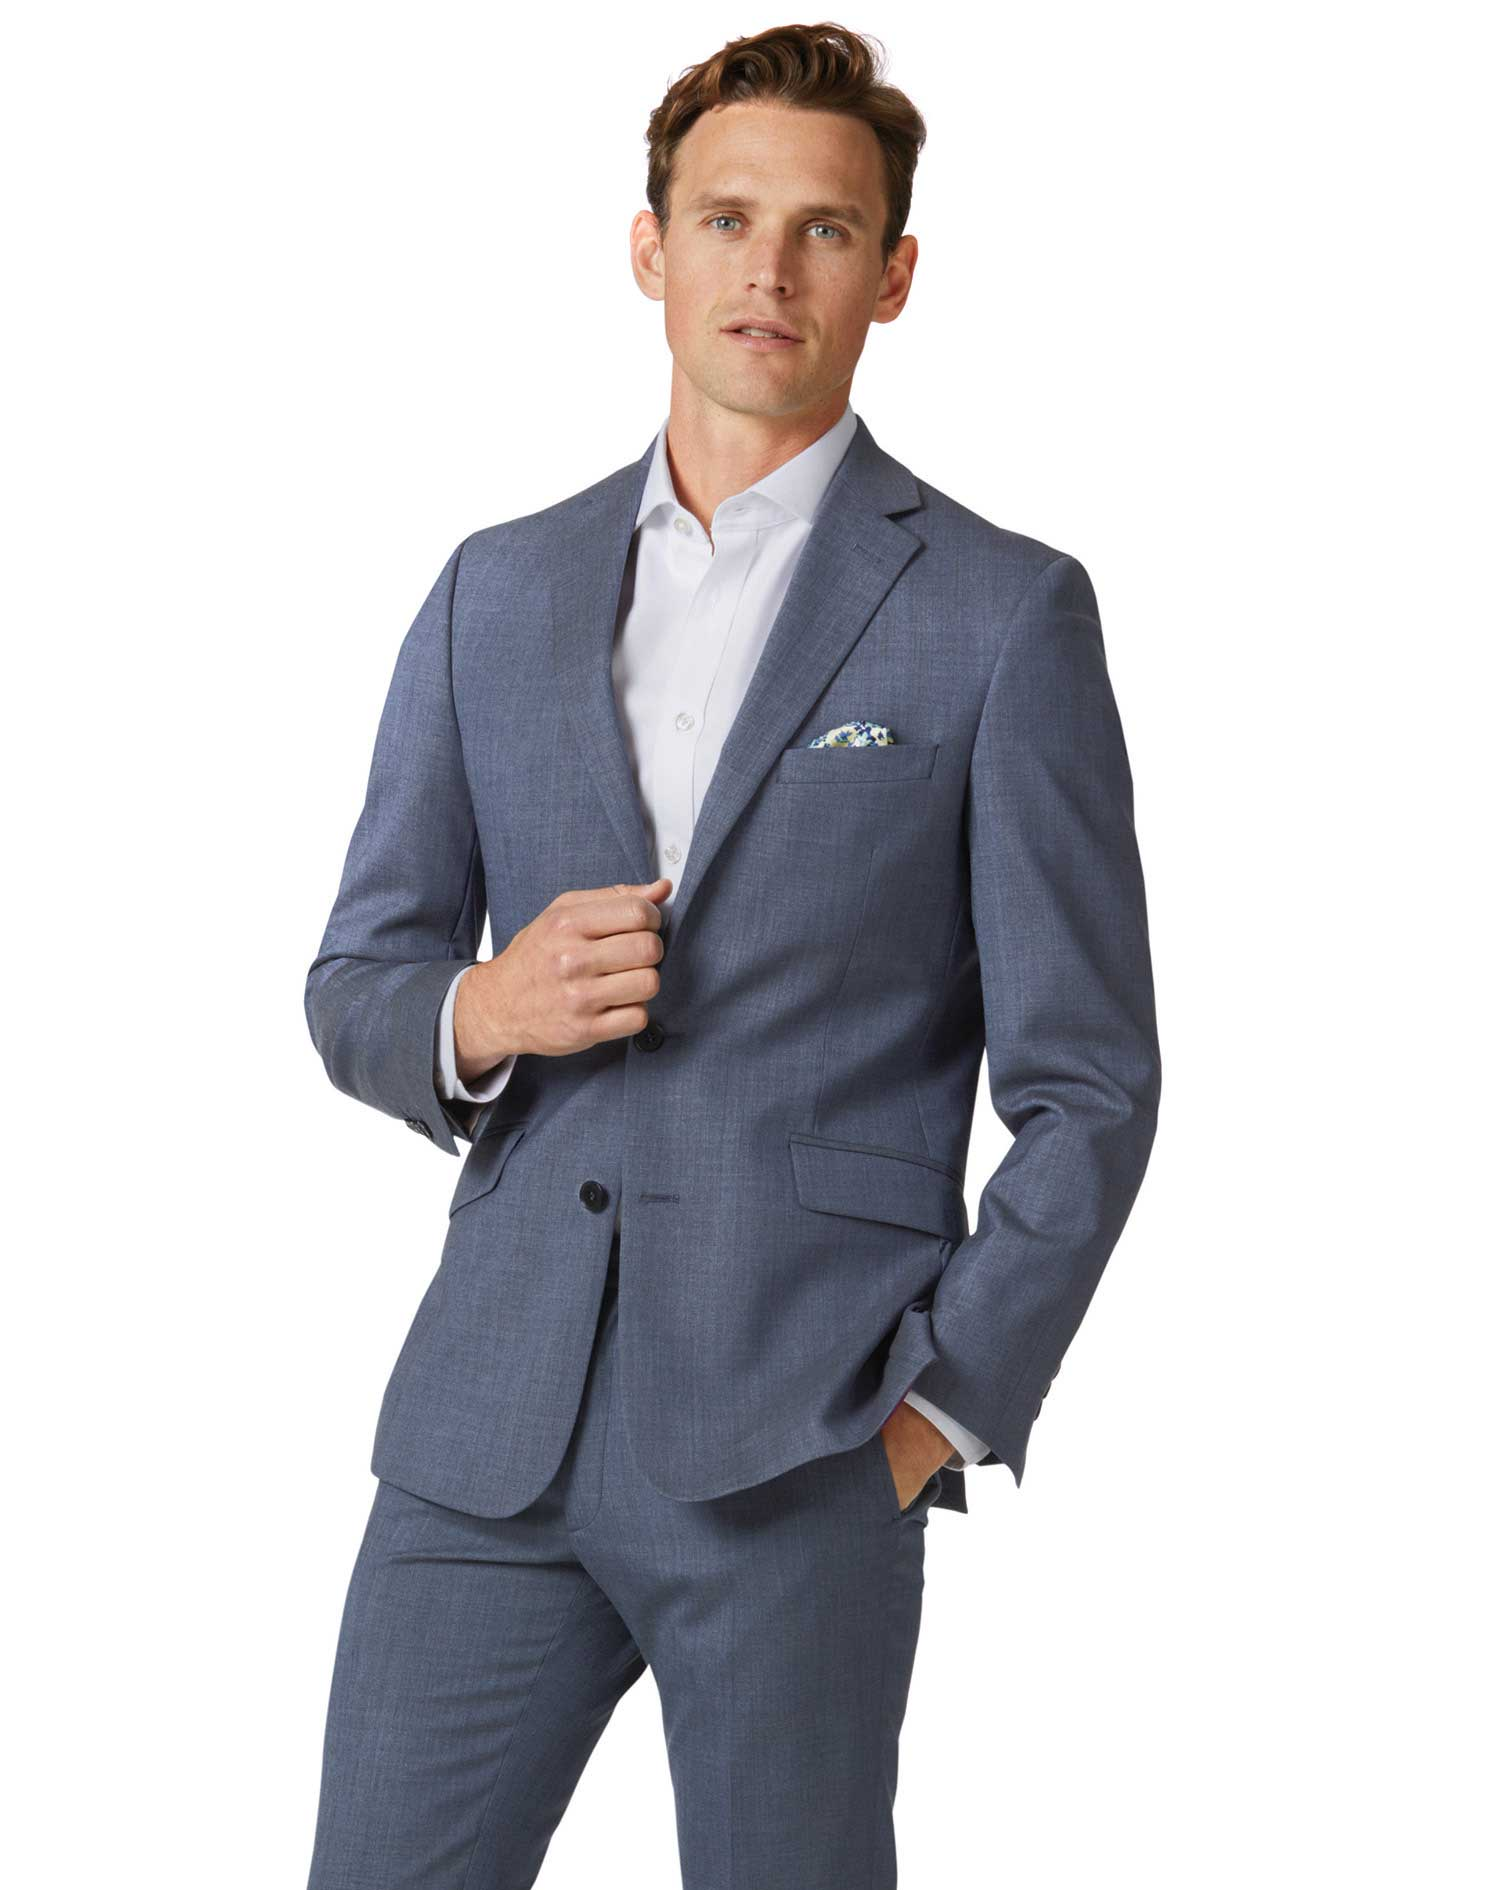 Image of Charles Tyrwhitt Airforce Blue Extra Slim Fit Merino Business Suit Wool Jacket Size 38 Short by Charles Tyrwhitt